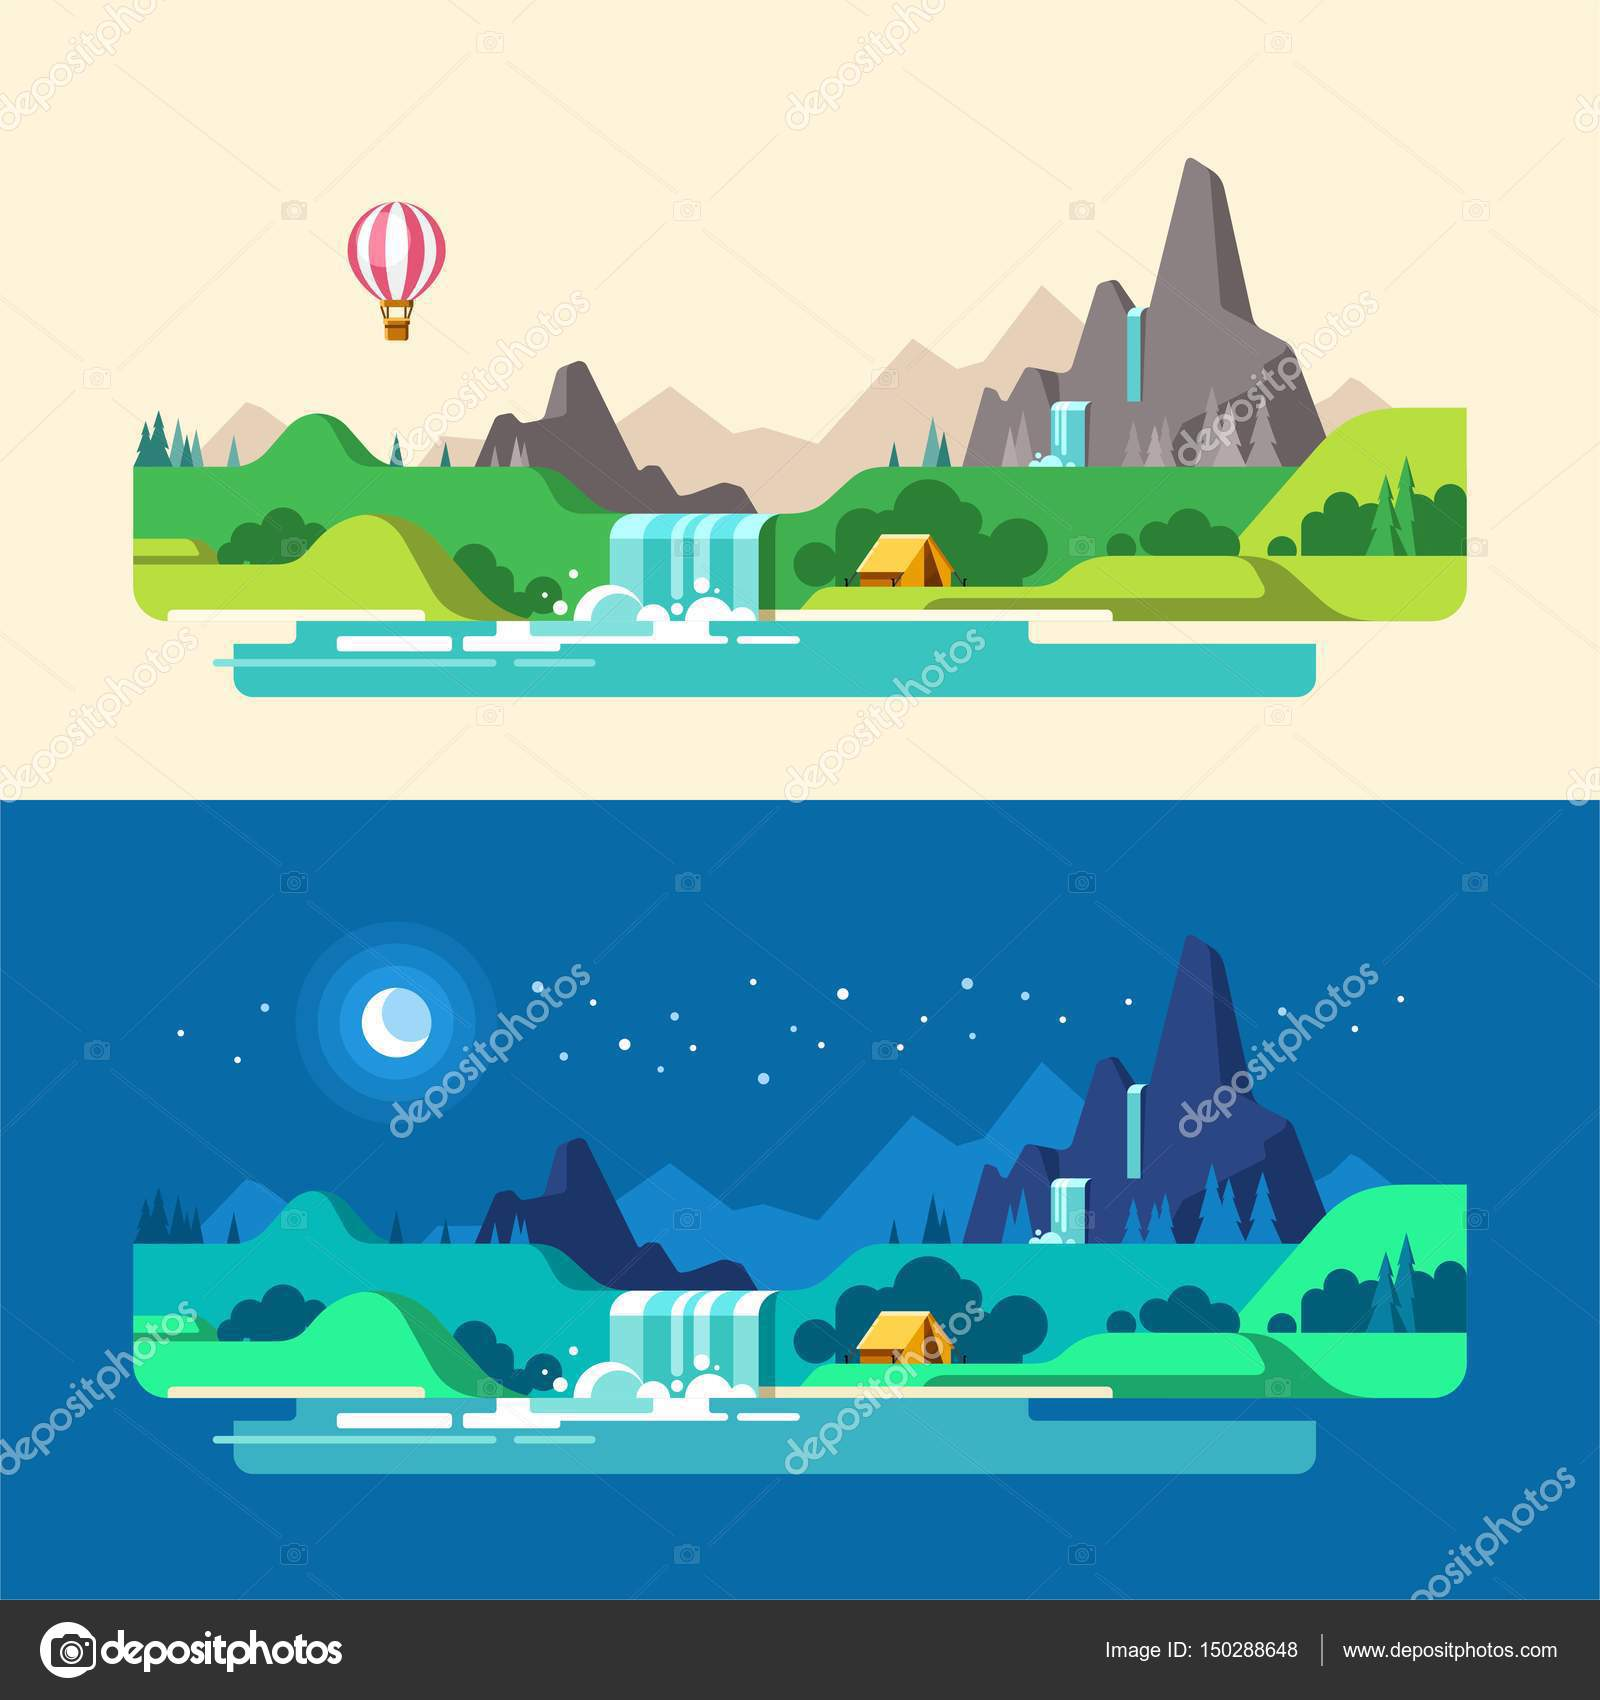 Landscape Design In A Day: Summer Landscape, Day And Night. Hiking And Camping